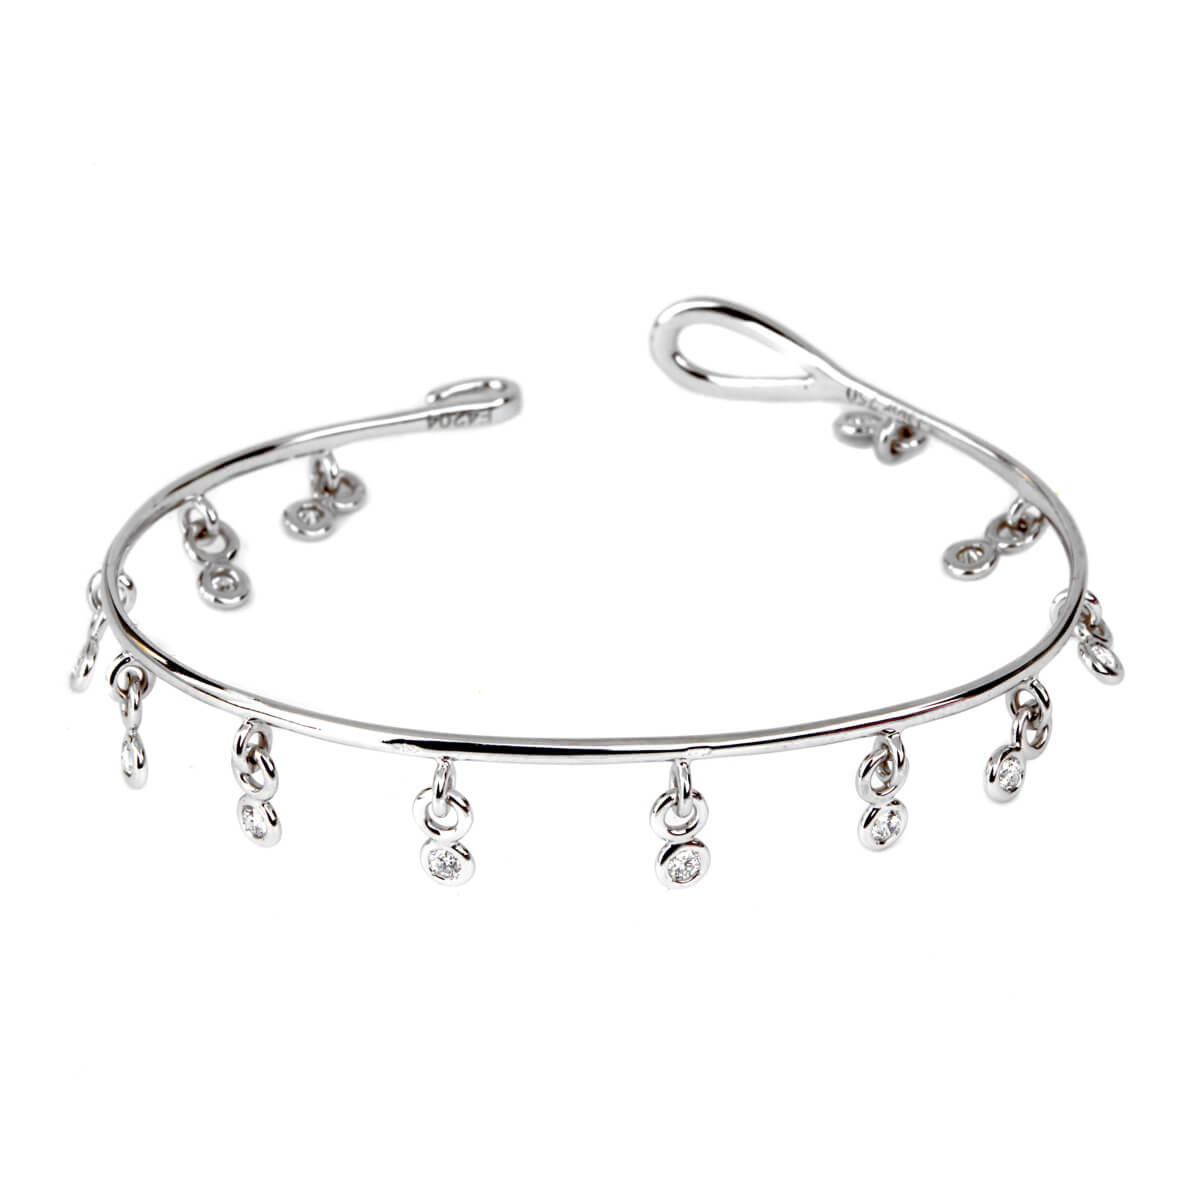 Dior Dangling Diamond Bangle Bracelet